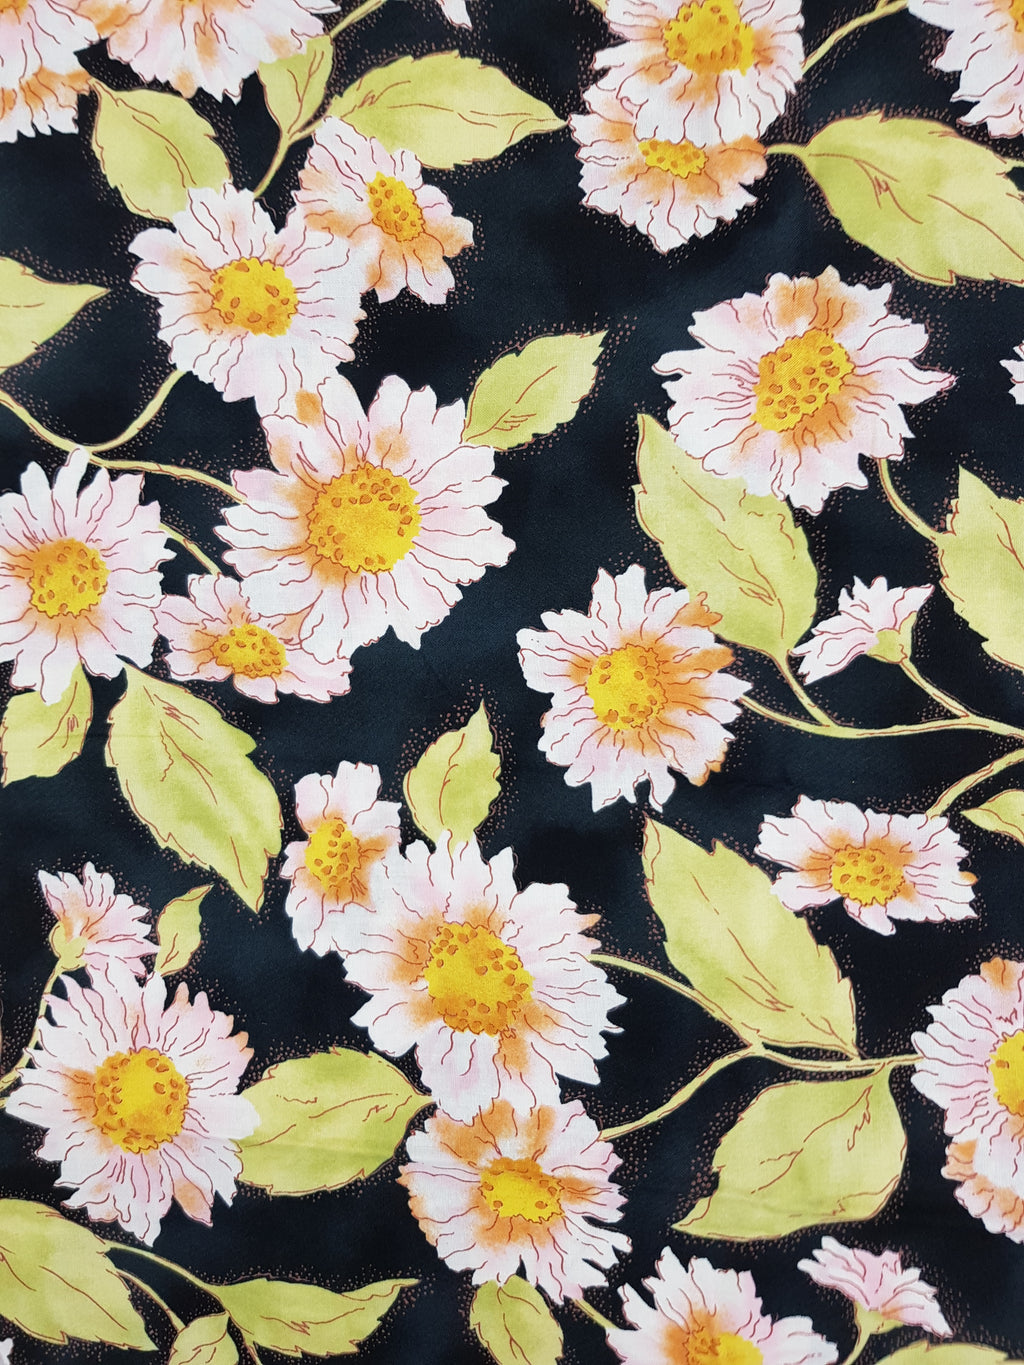 Large Apricot/Yellow Flowers on Black (39x42cm) - Lori's Fabrics & Quilts